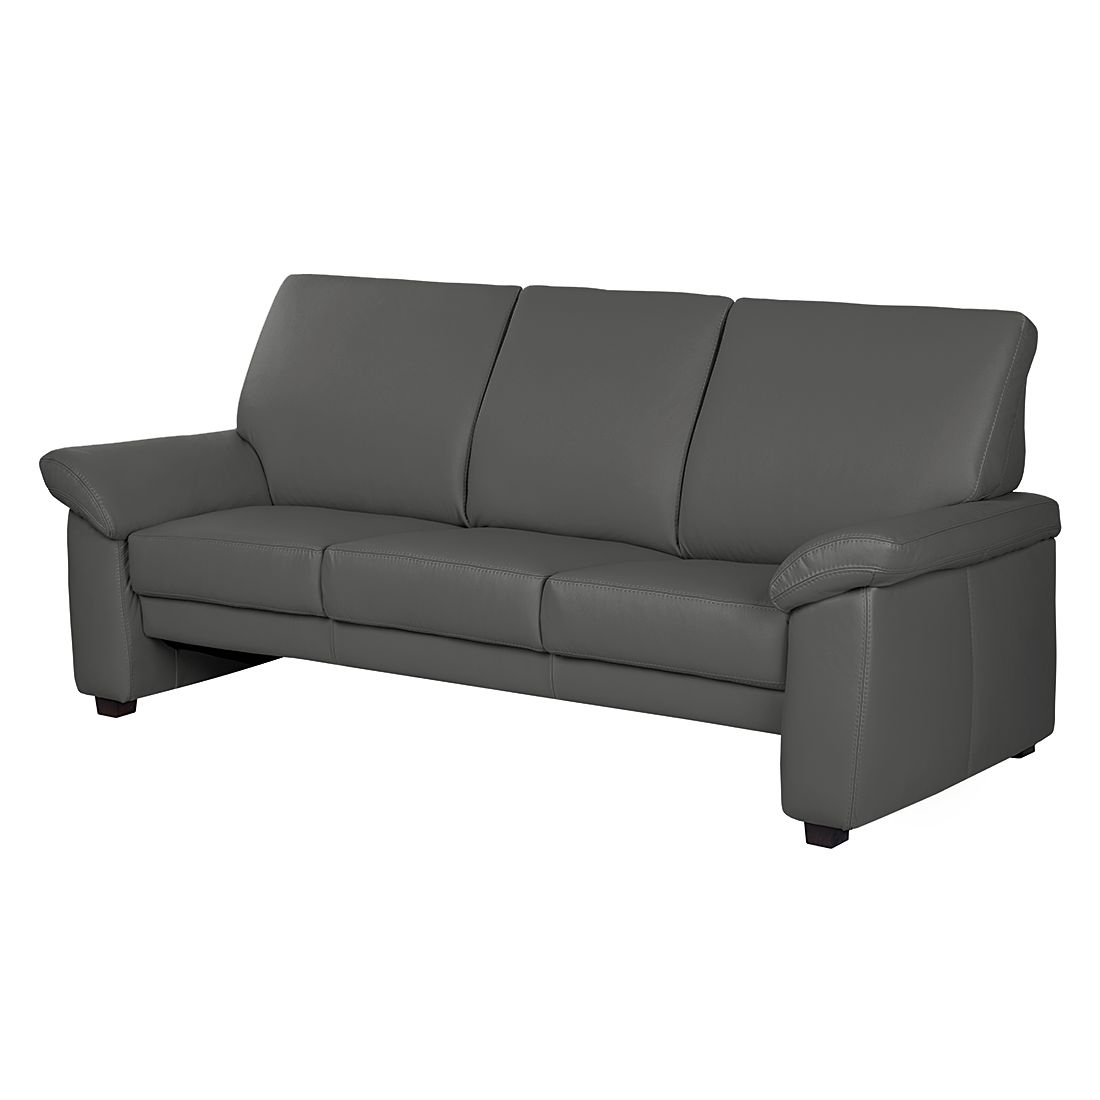 sofa grimsby 3 sitzer echtleder anthrazit nuovoform kaufen. Black Bedroom Furniture Sets. Home Design Ideas